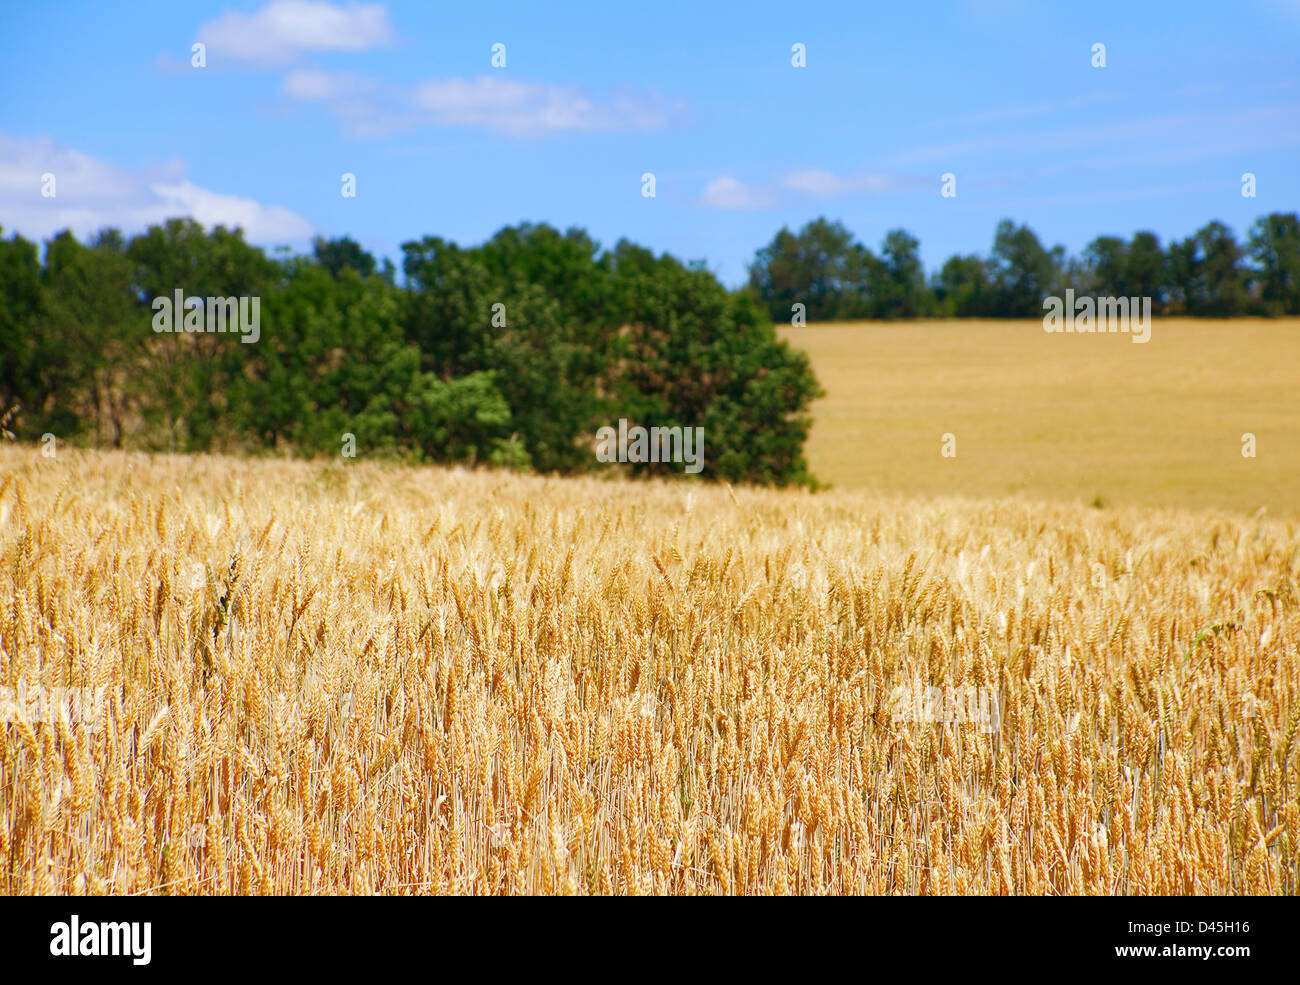 Wheat field landscape with sky - Stock Image